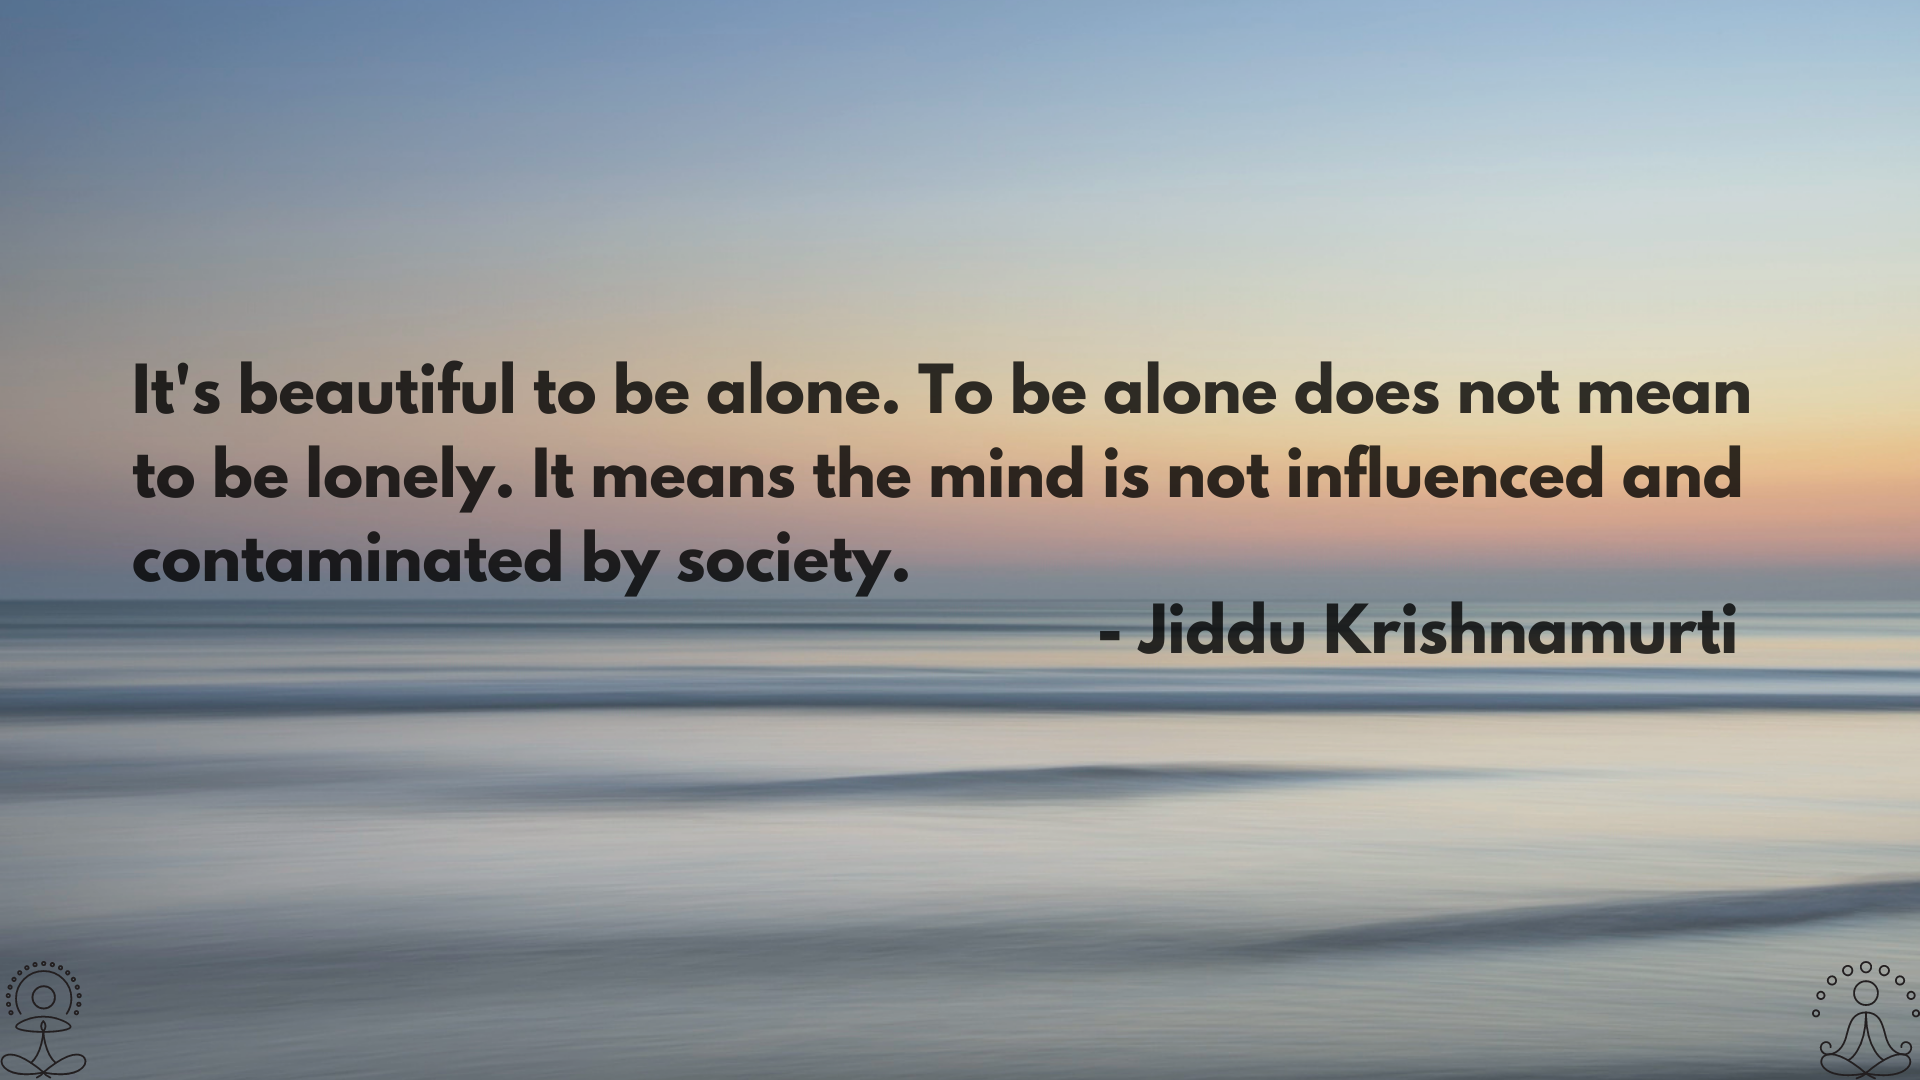 It's beautiful to be alone. To be alone does not mean to be lonely. It means the mind is not influenced and contaminated by society. – Jiddu Krishnamurti [1920×1080]